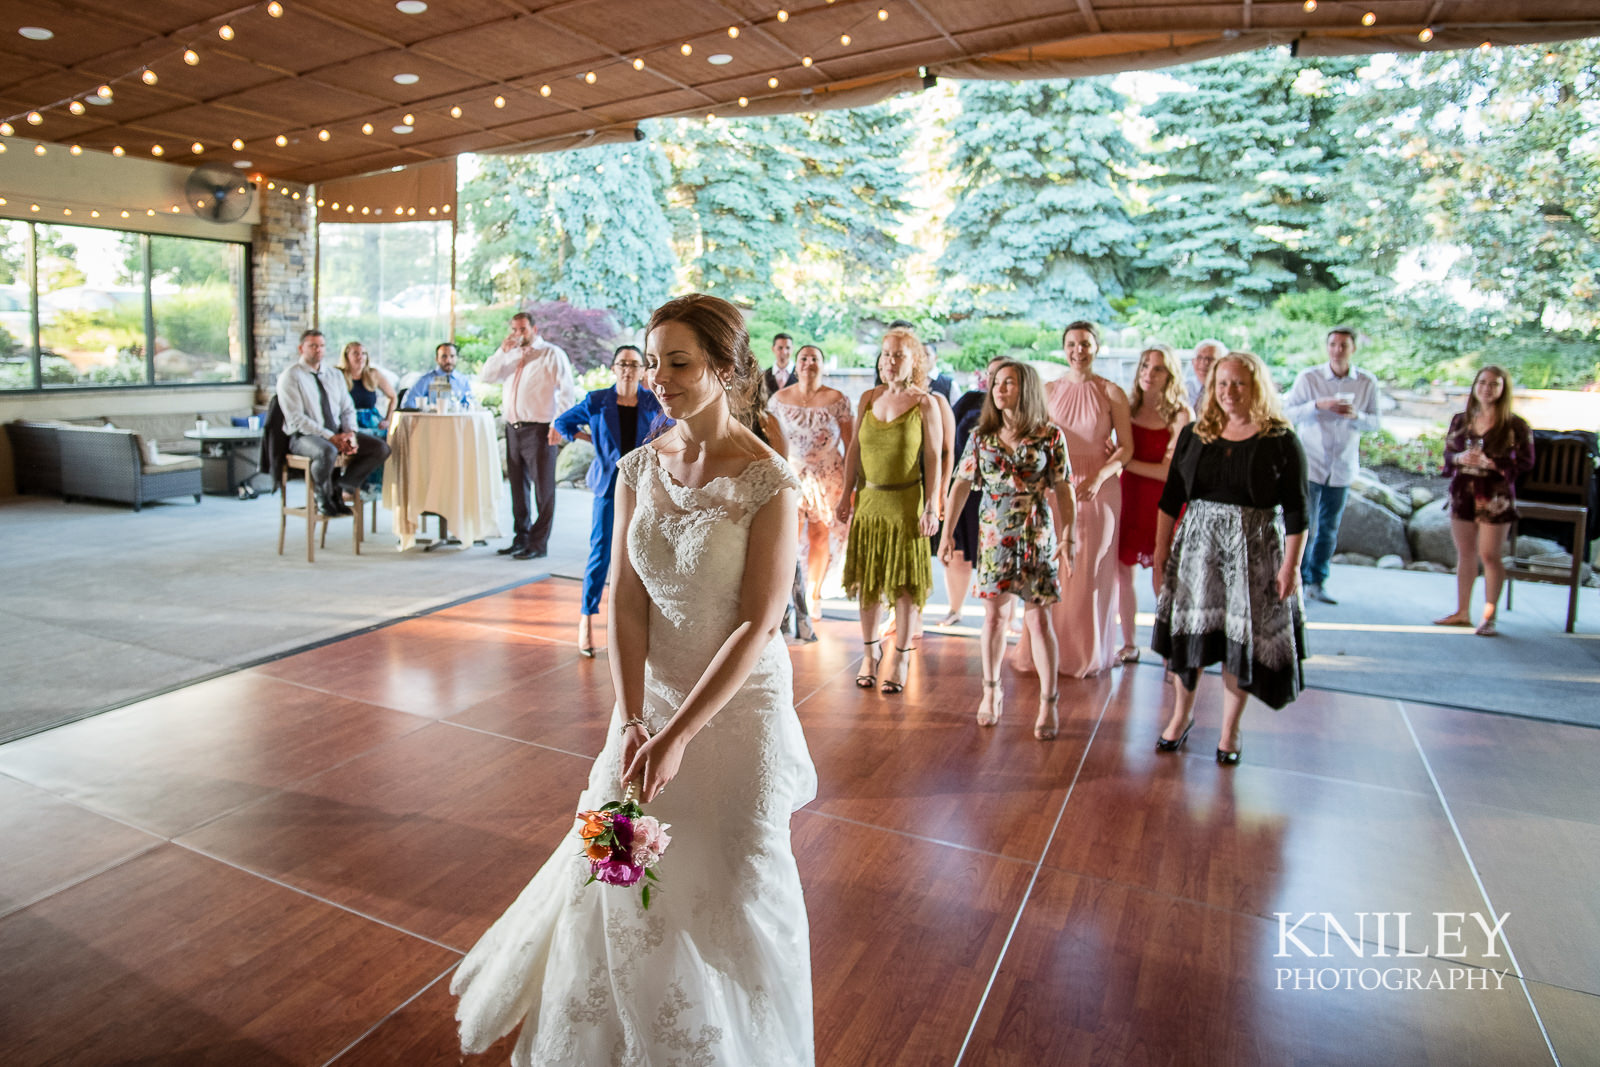 126 - Ravenwood Golf Club wedding pictures - Rochester NY - Kniley Photography - XT2B2053.jpg